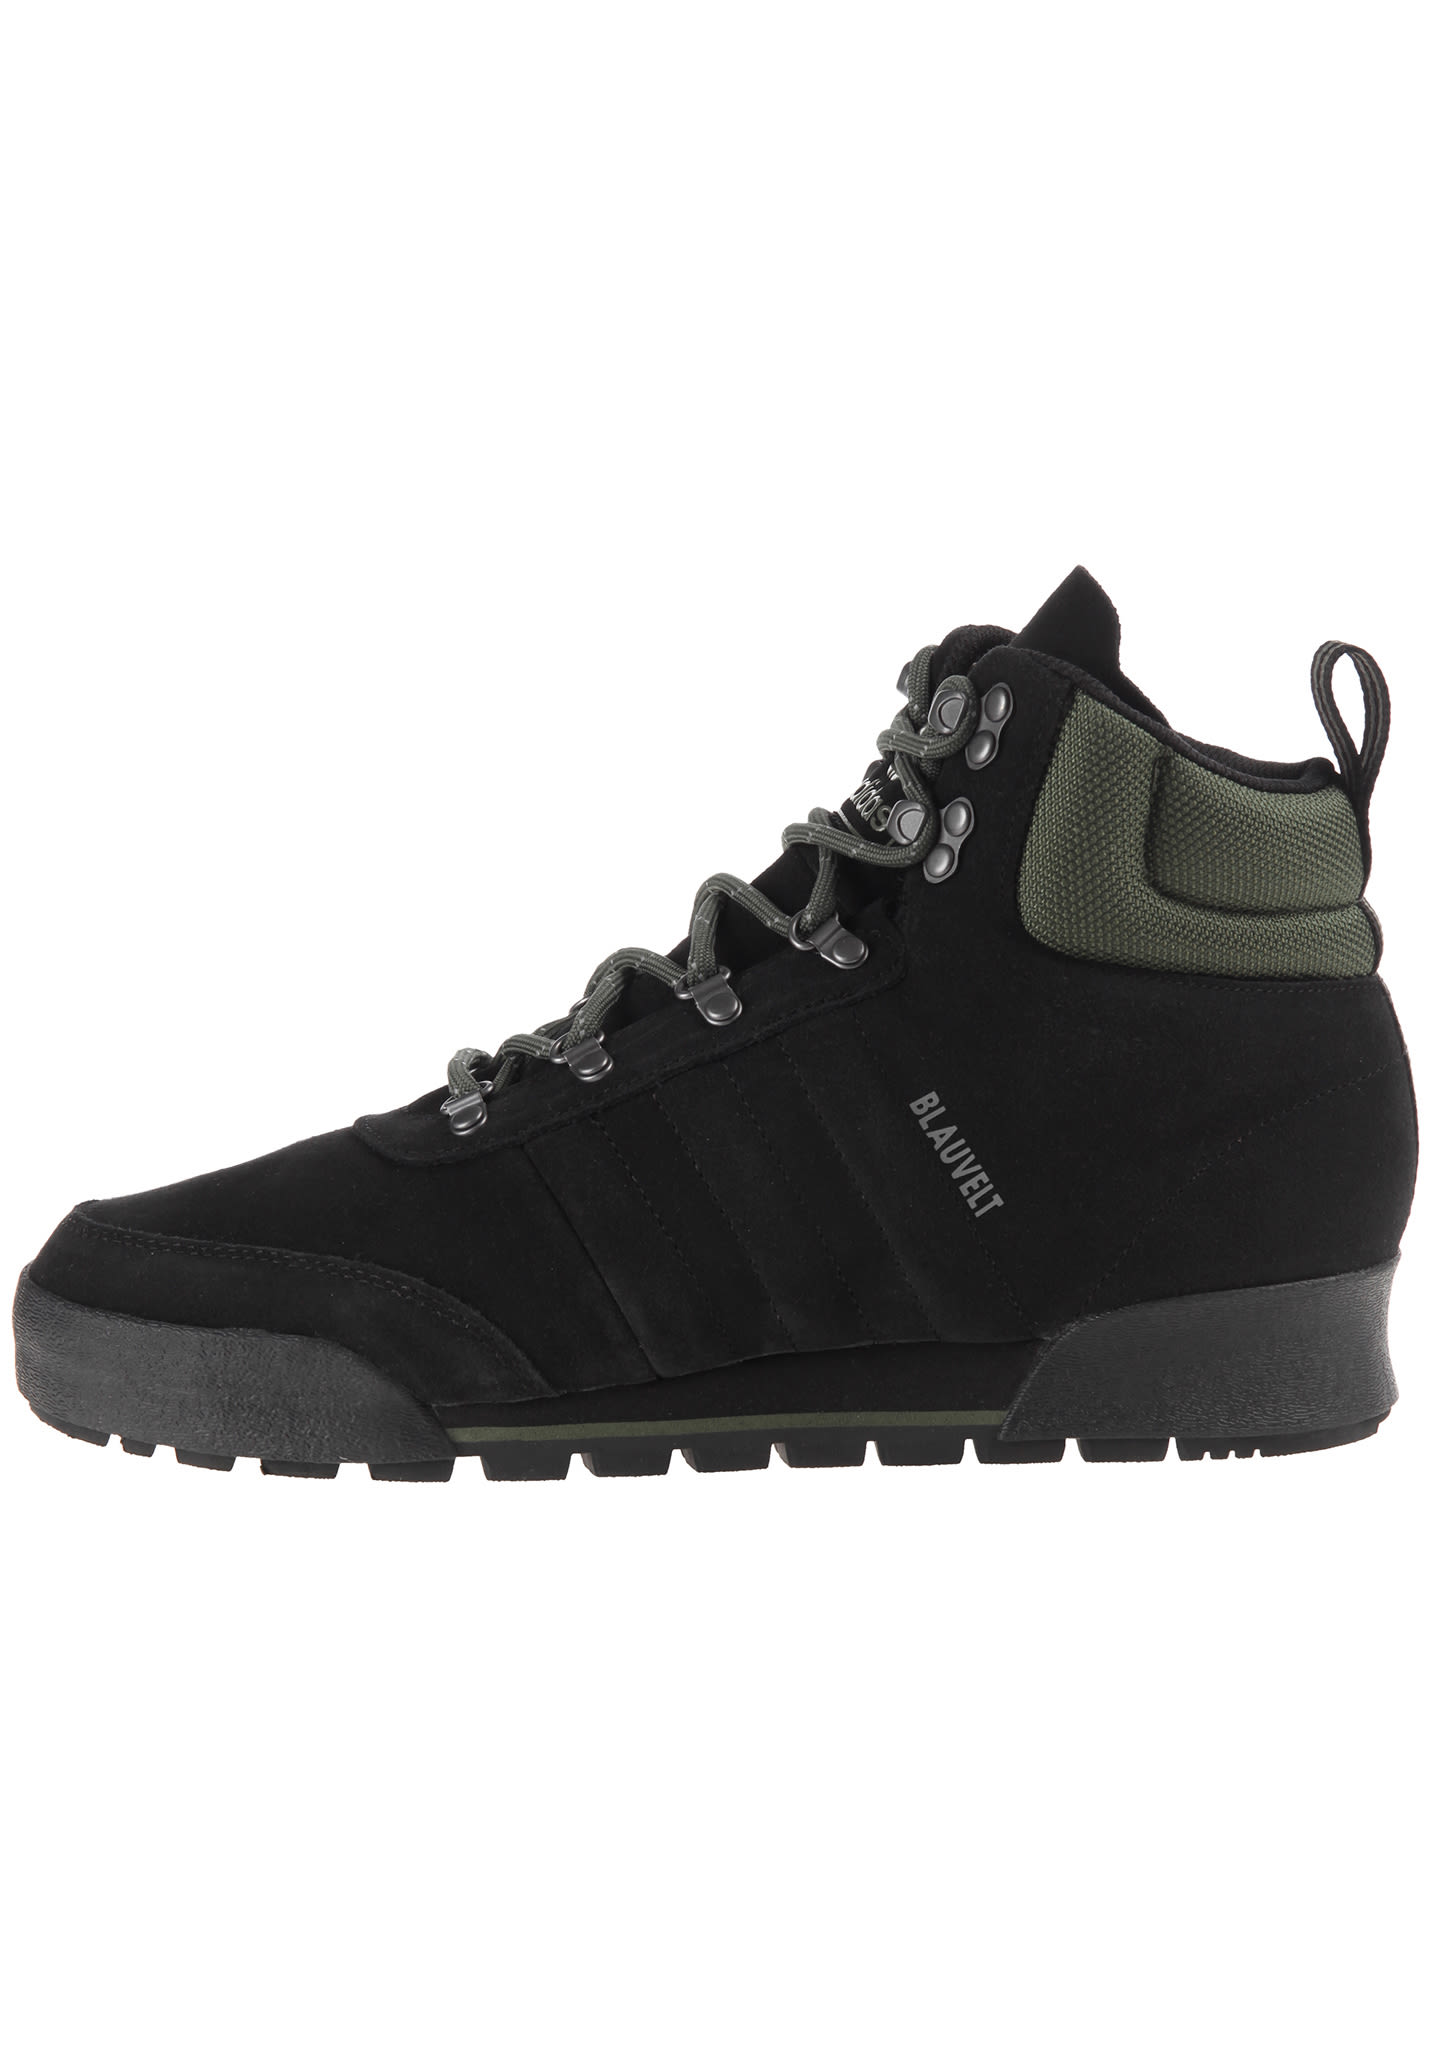 new concept 20618 e32e7 Adidas Skateboarding Jake Boot 2.0 - Boots for Men - Black